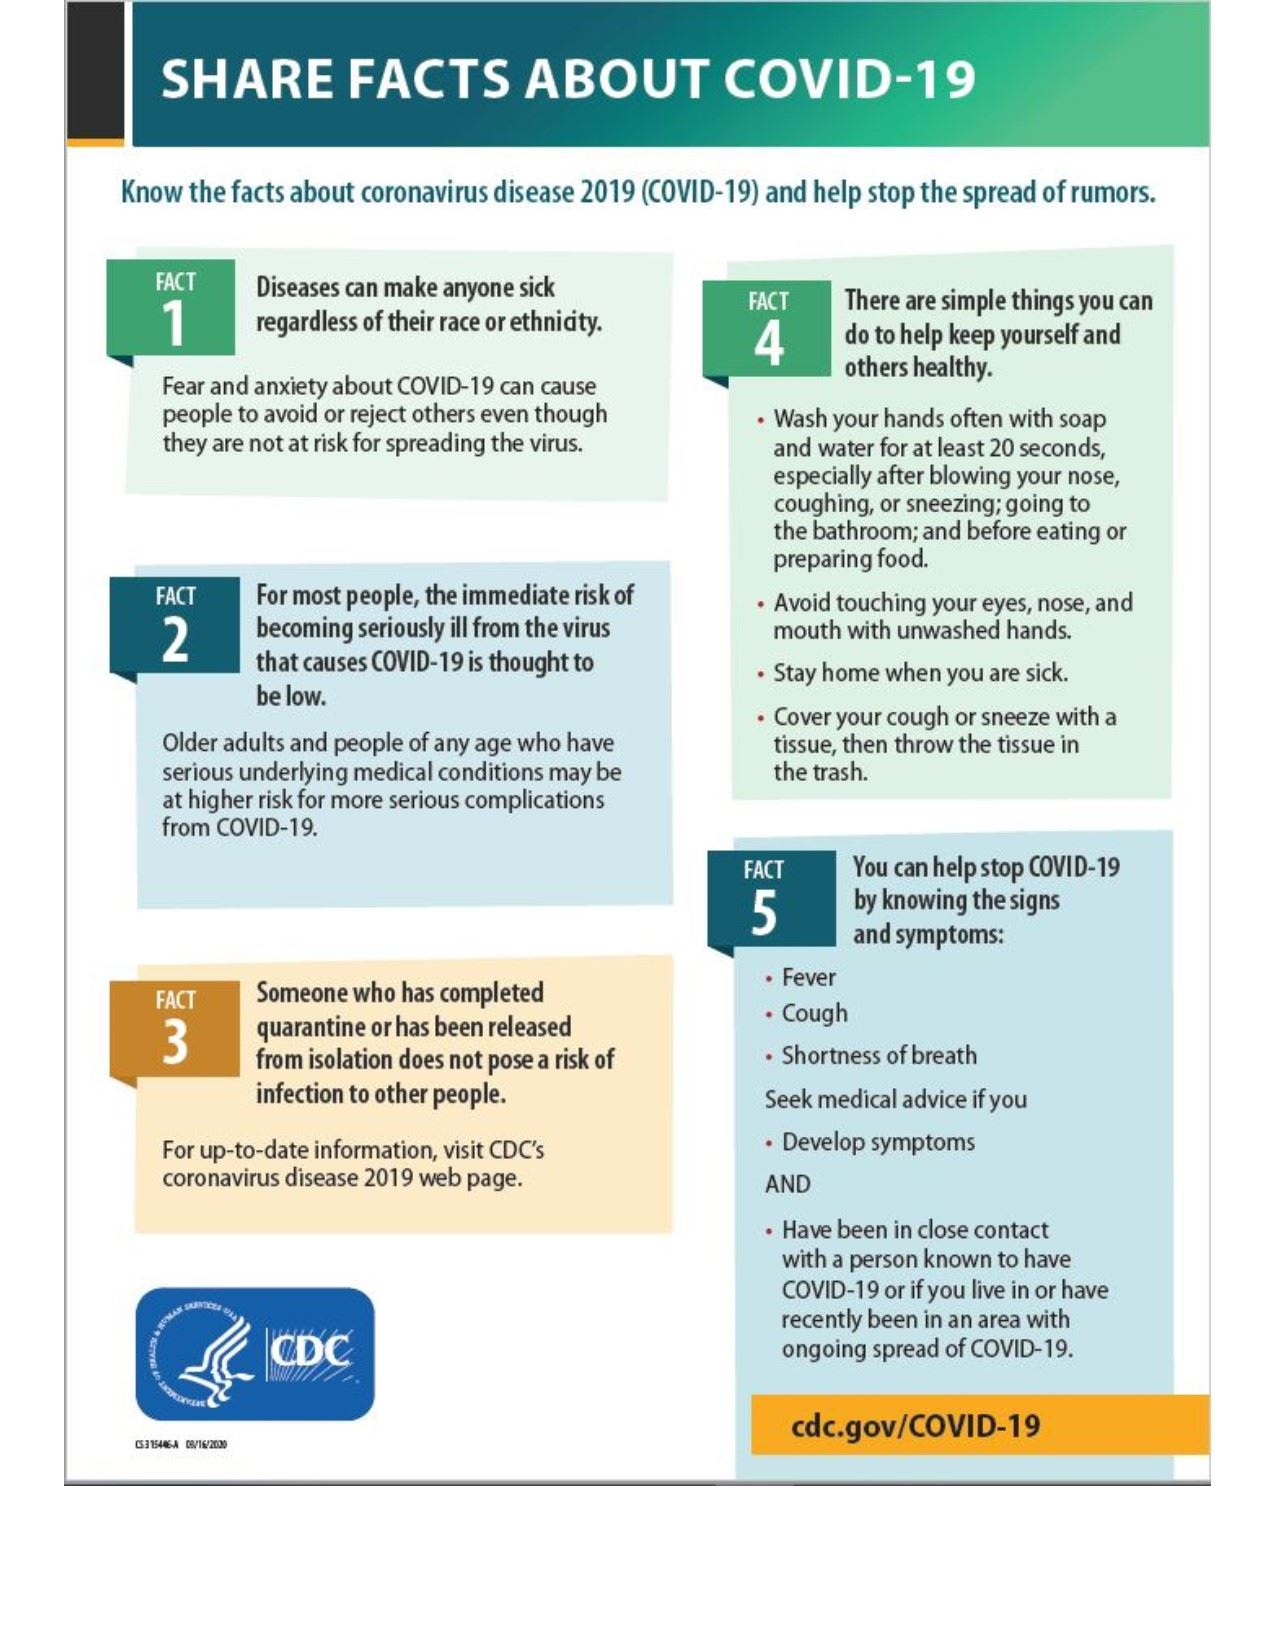 Infographic from the CDC about avoiding COVID-19 rumors.